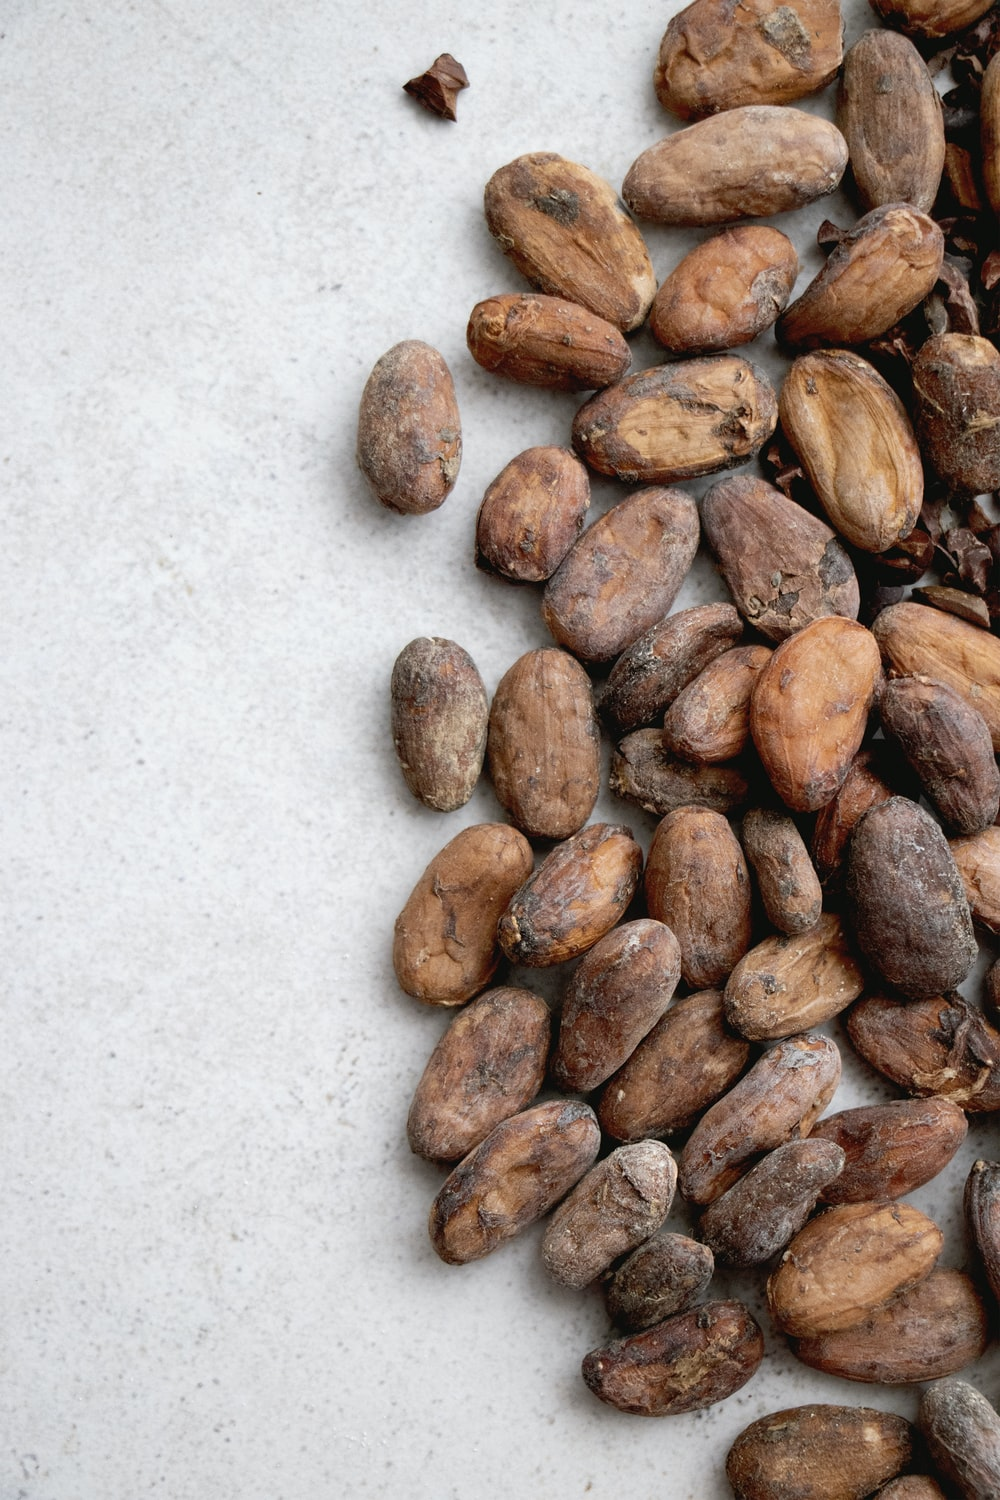 brown almond nuts on white surface